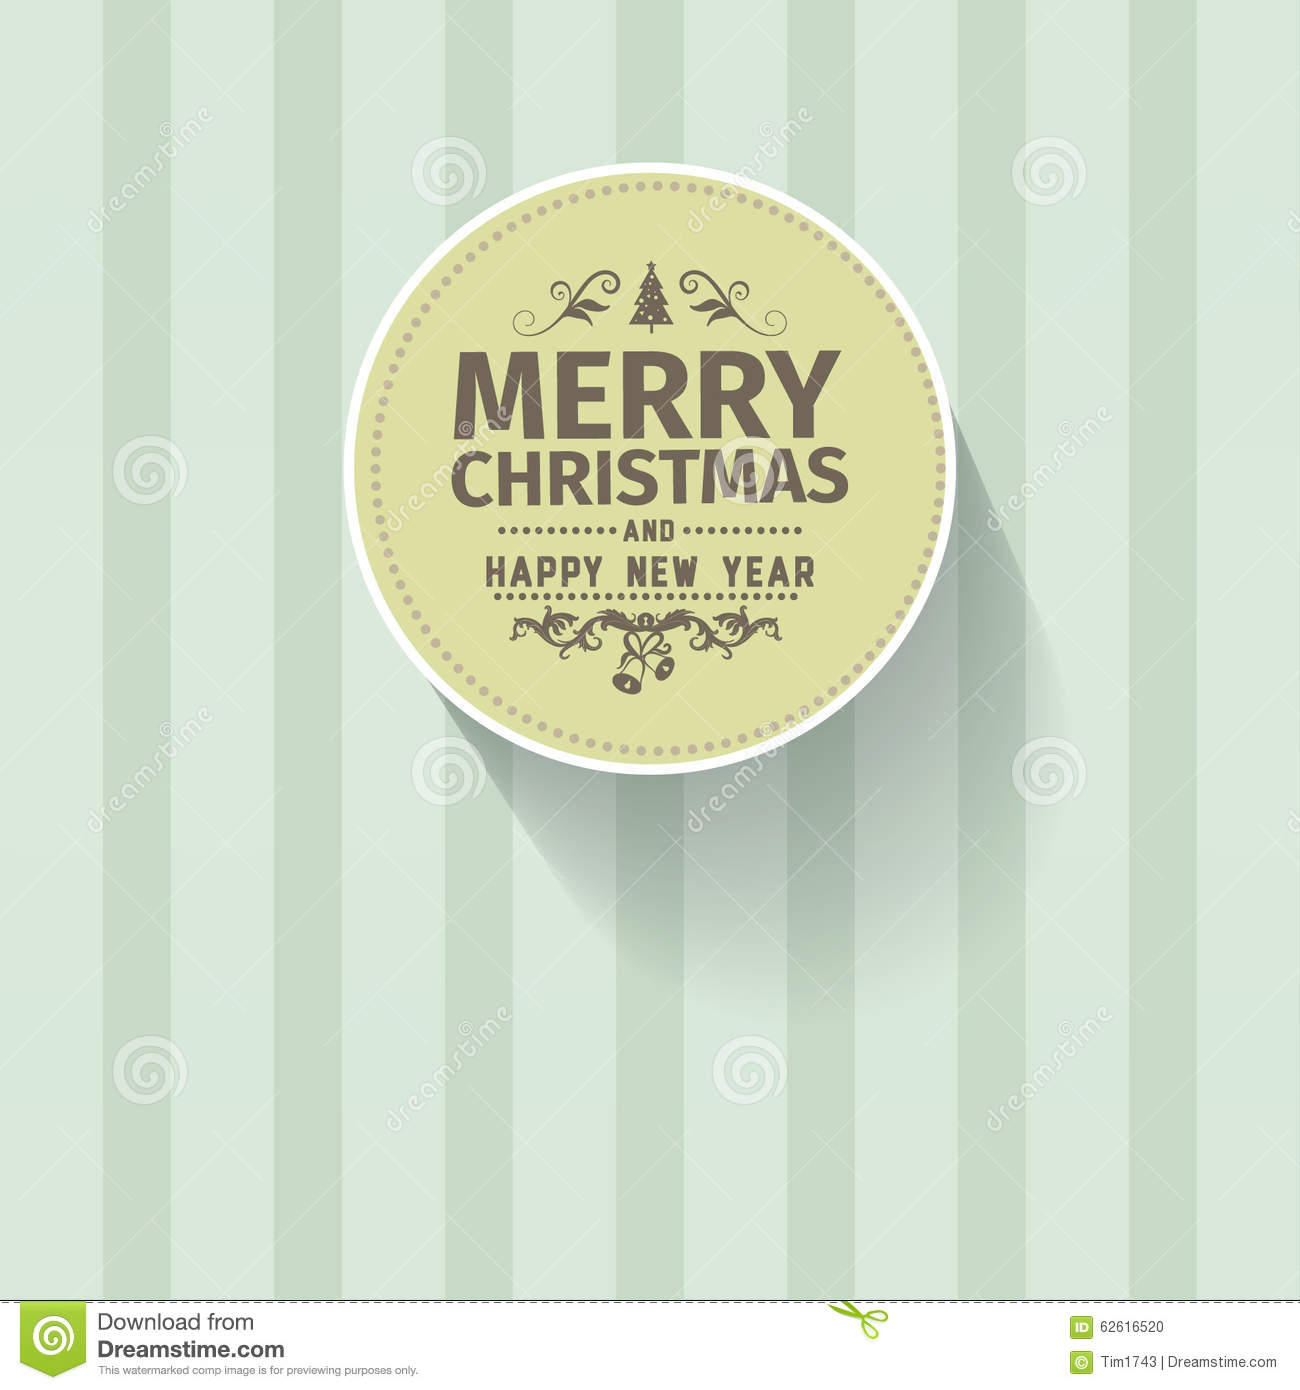 Easy Year To Travel On Christmas: Retro Vintage Simple Merry Christmas Vector Greeting Green